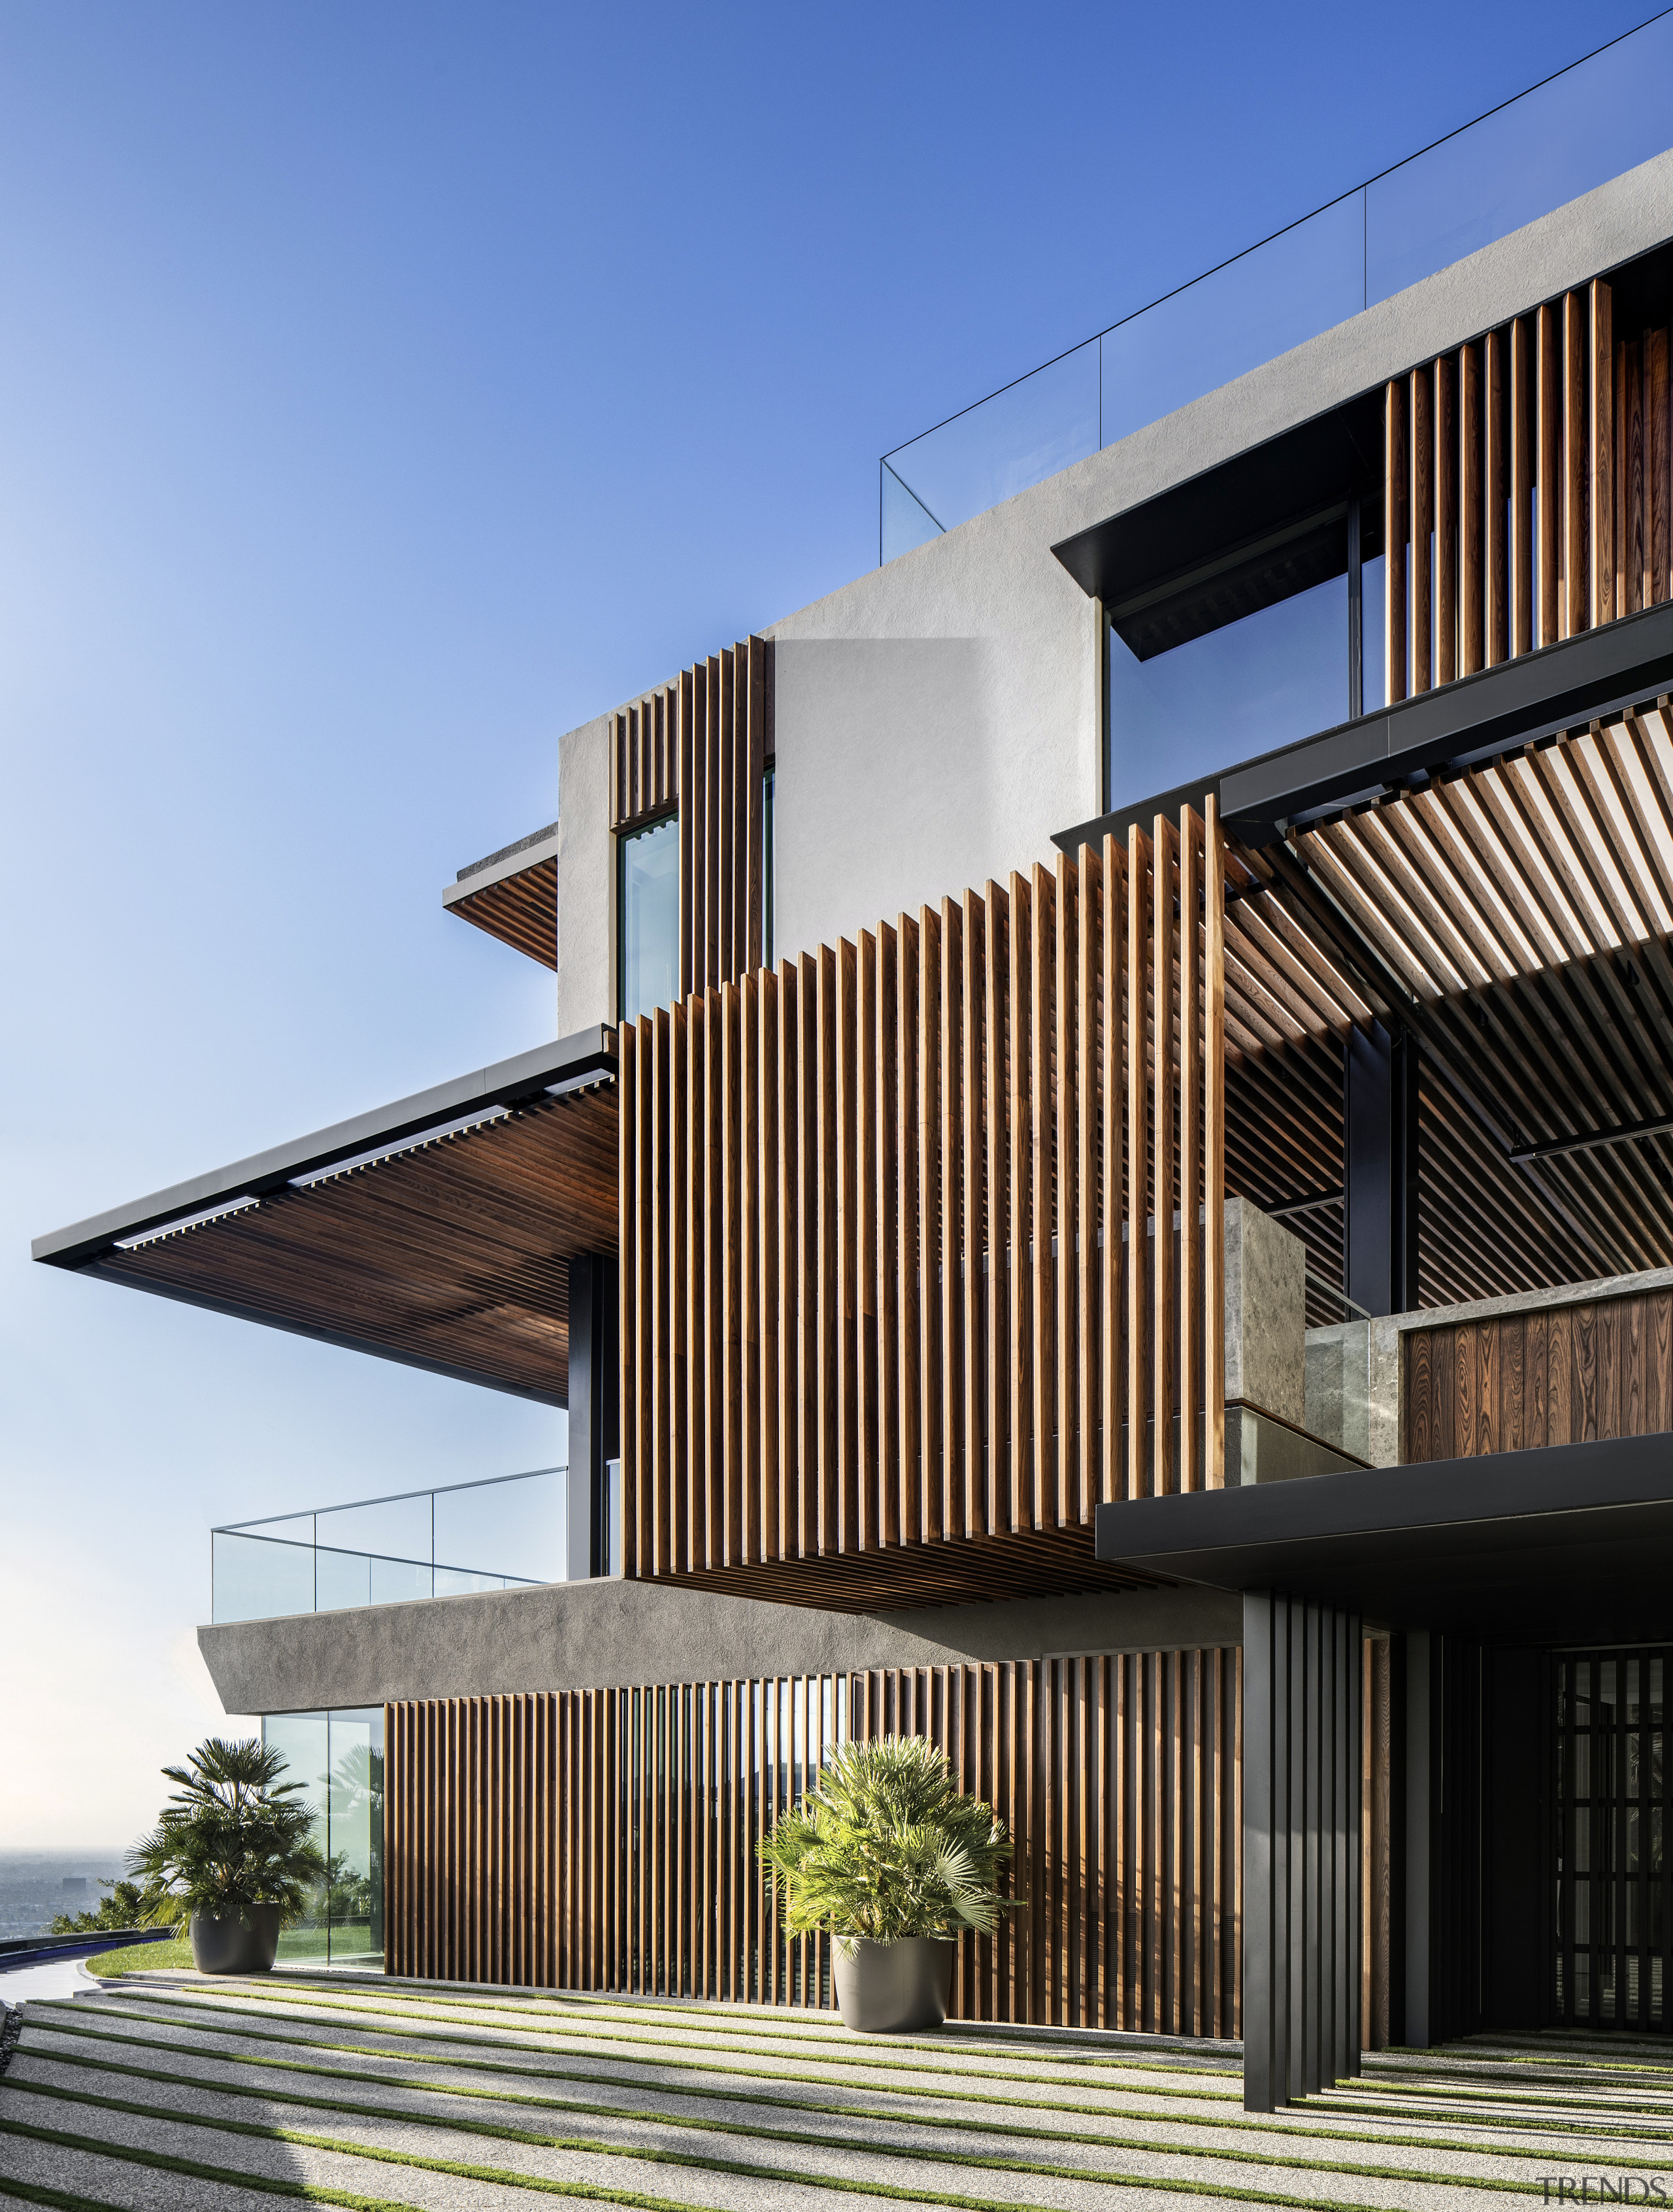 The exterior of this expansive new home features